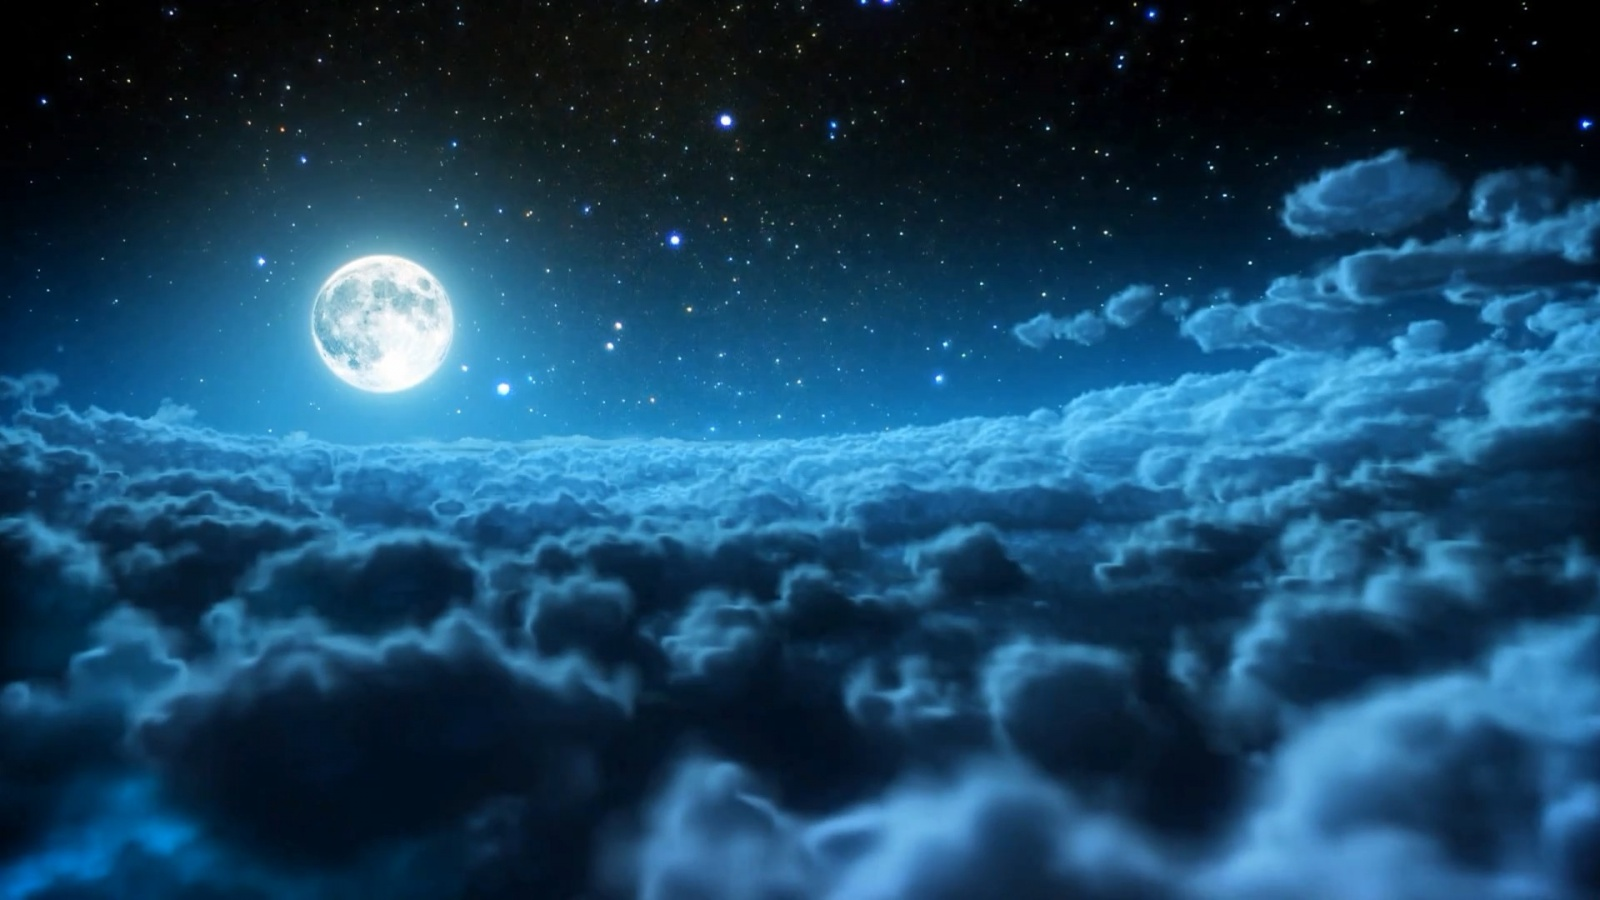 Cloudy Night Wallpapers 10197 1600x900